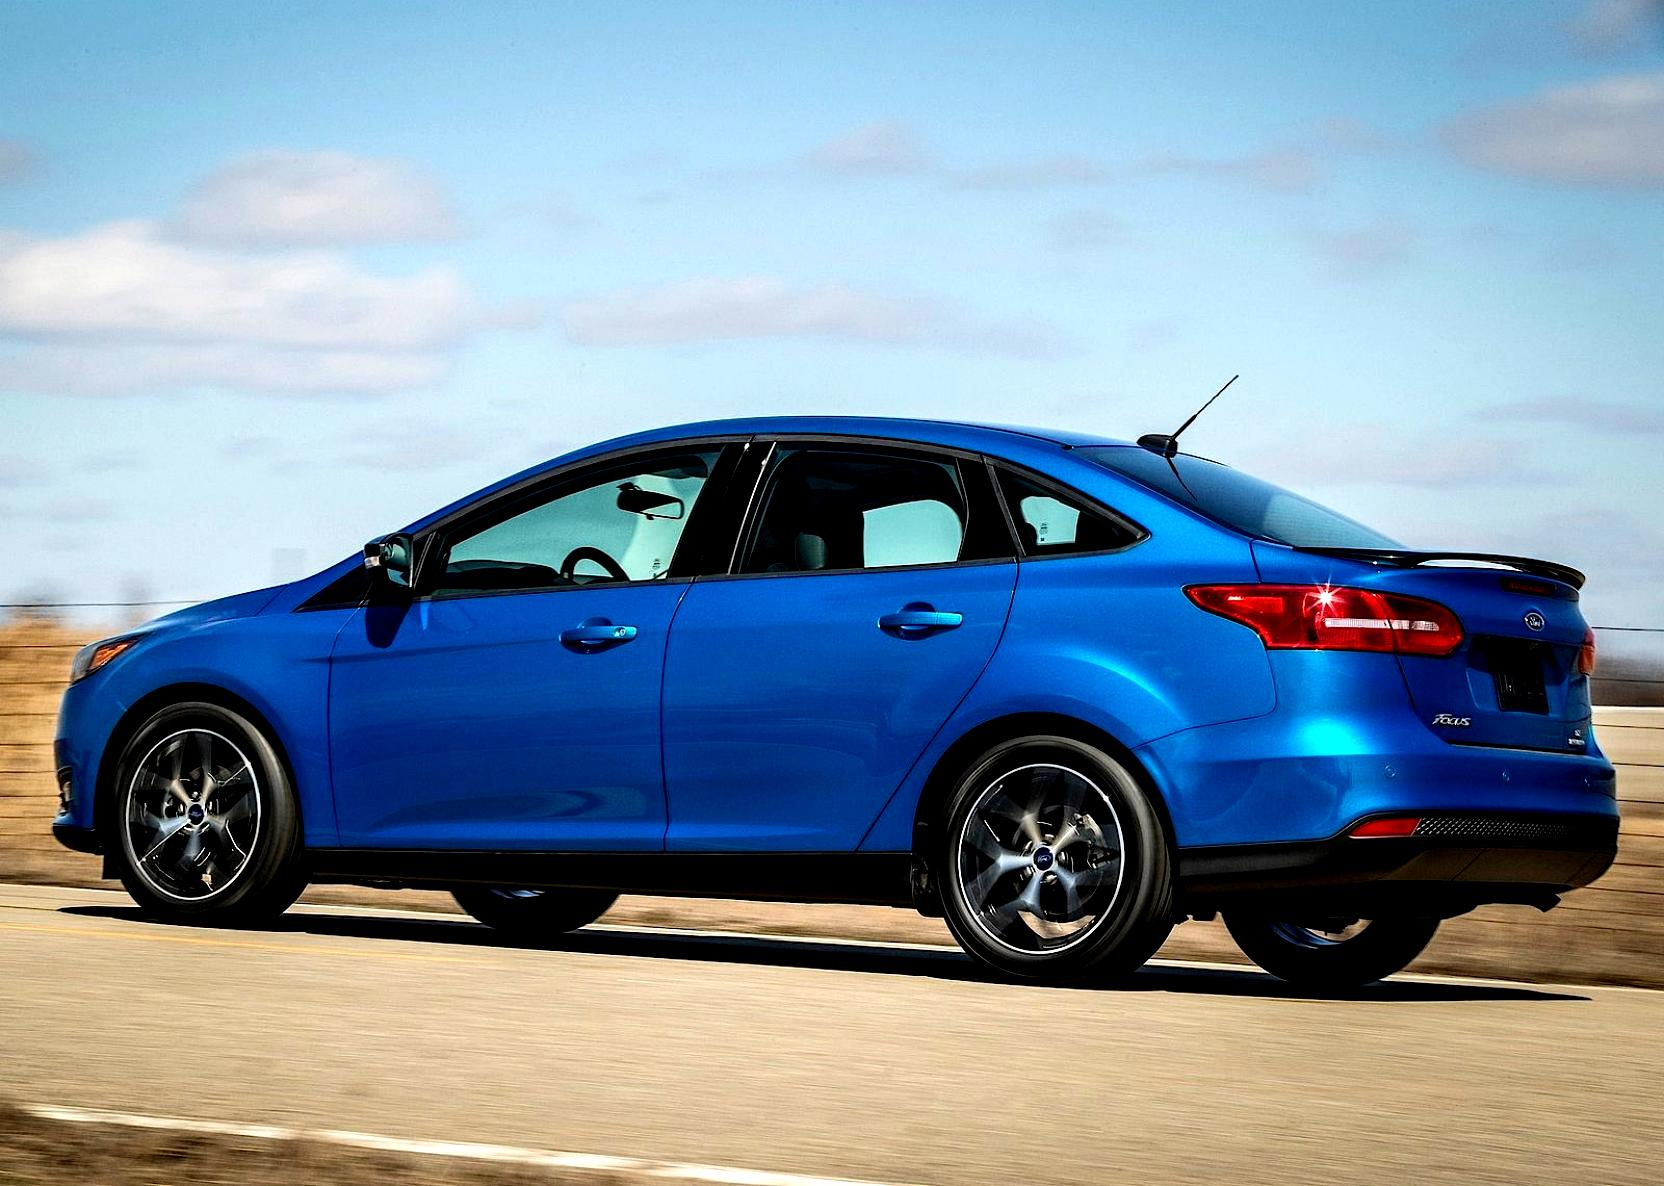 Ford Focus Sedan 2014 #16